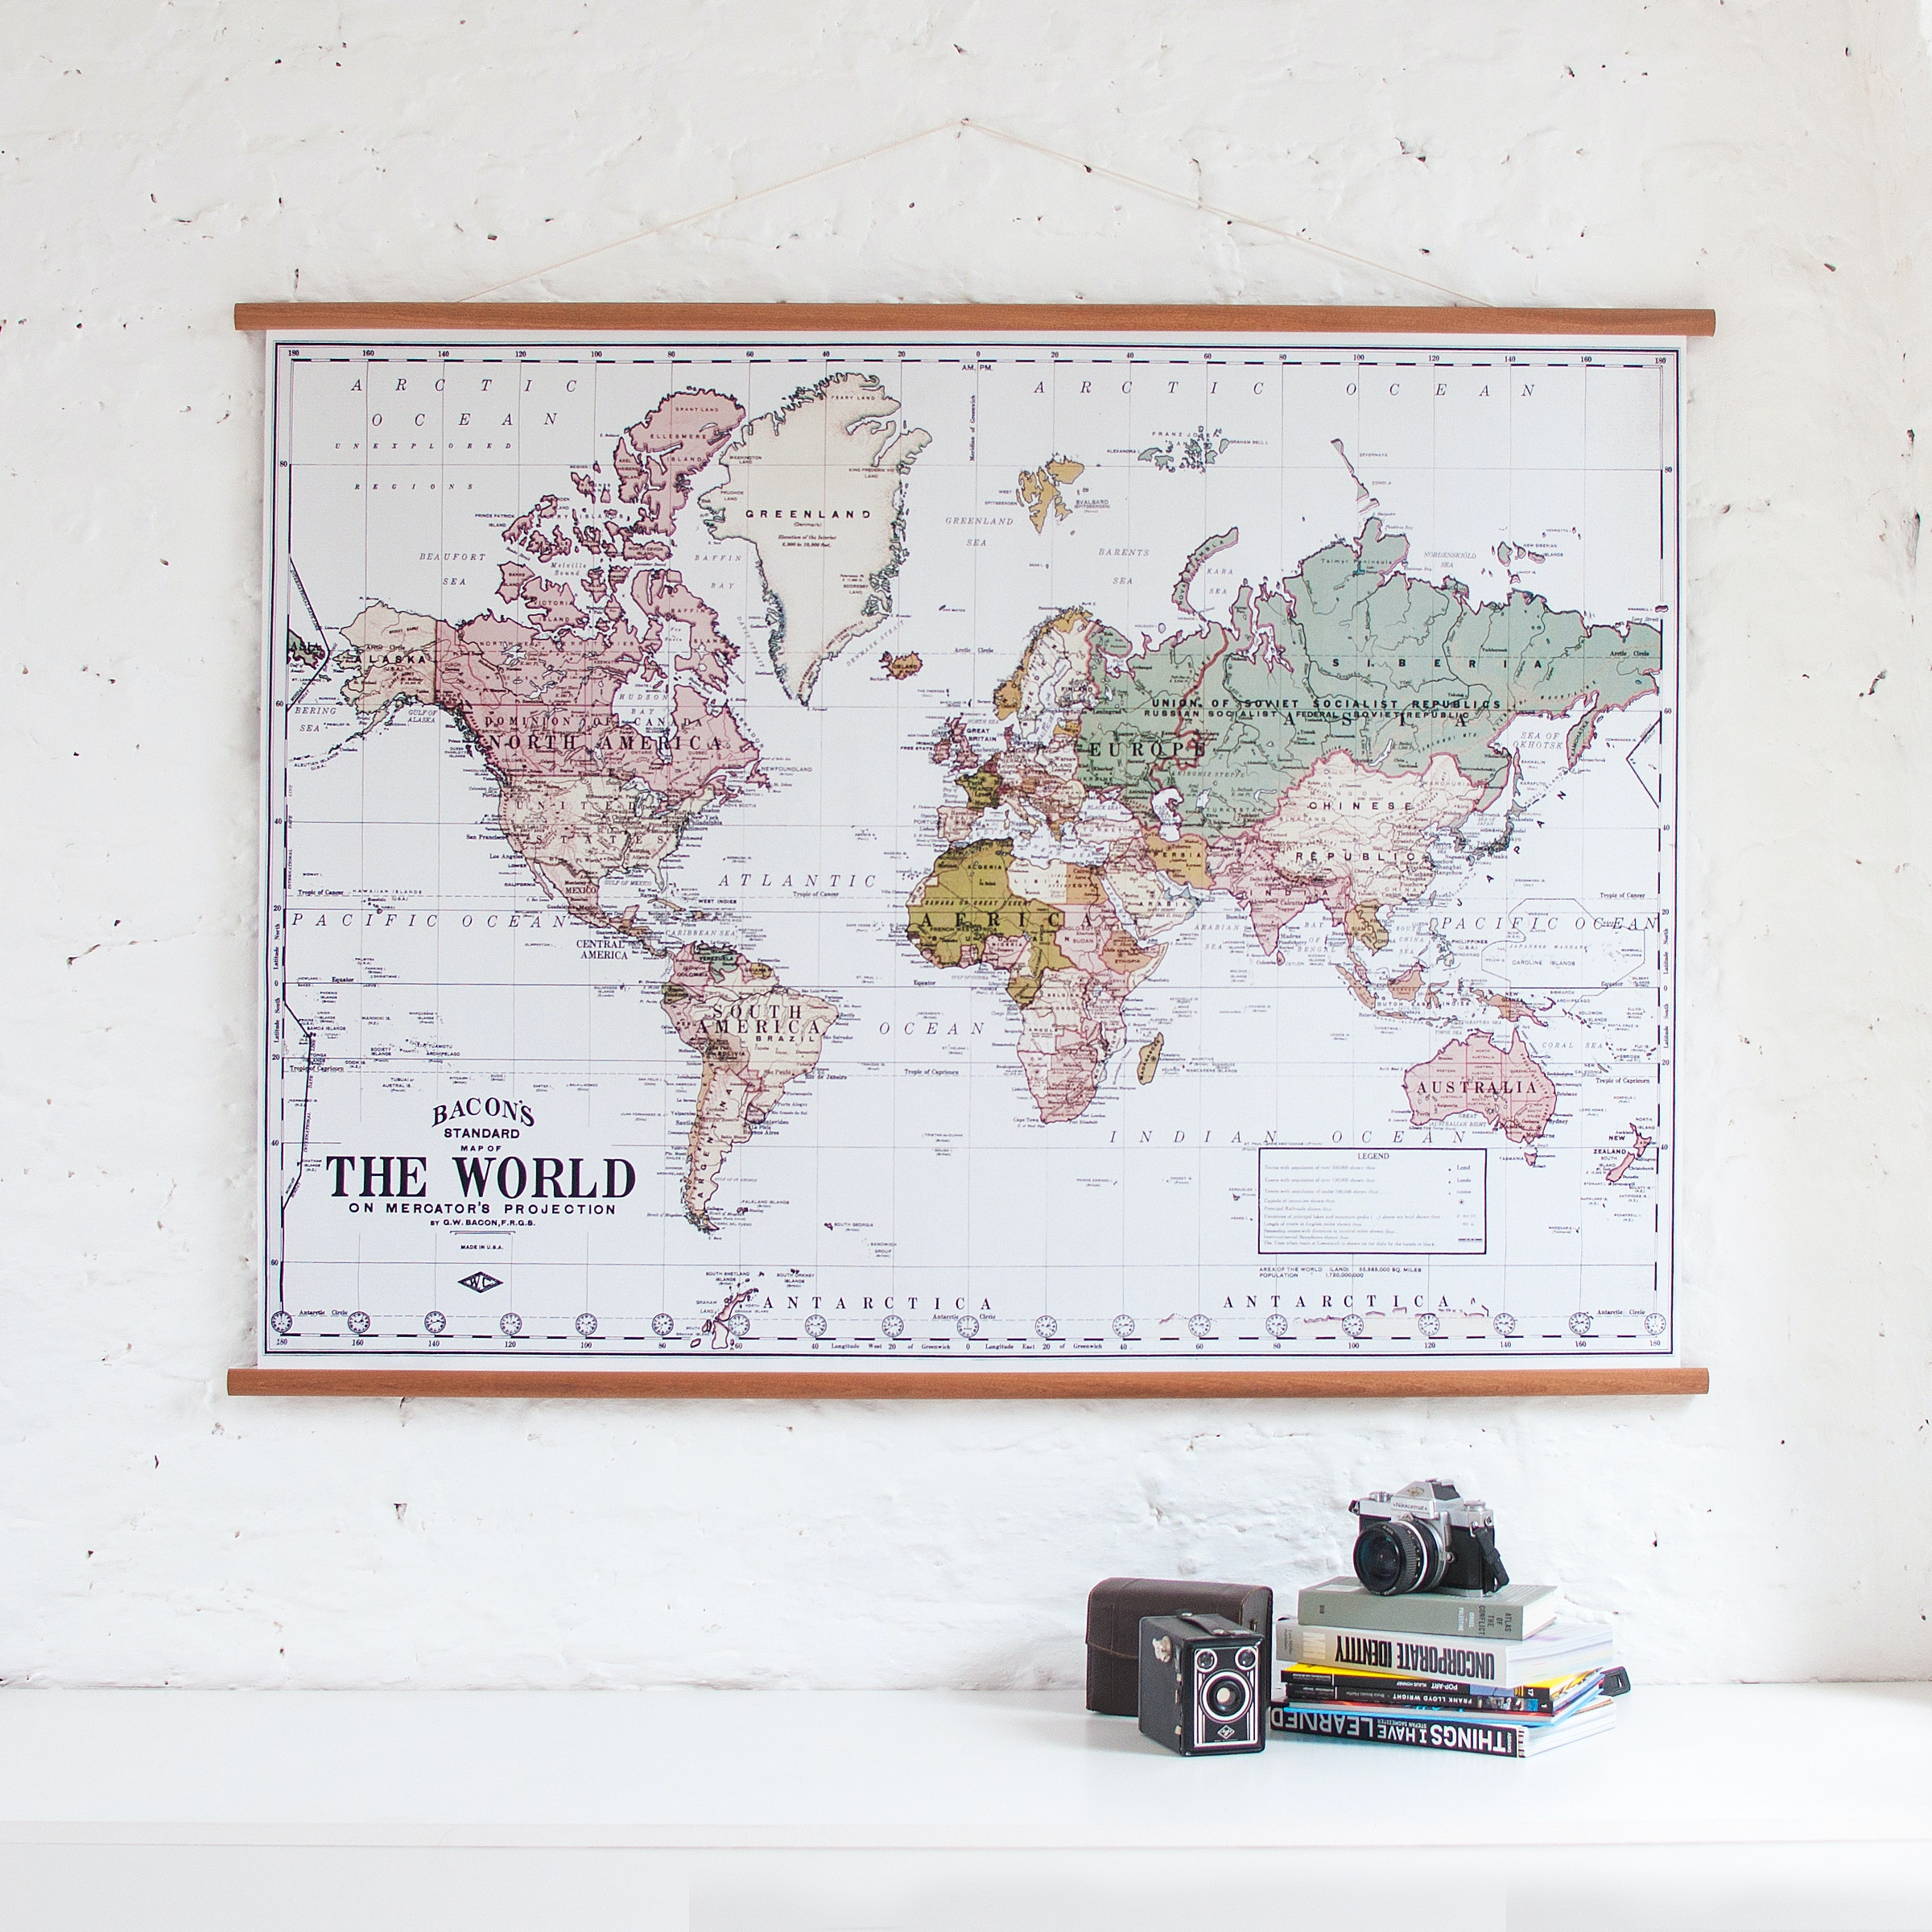 World Wall Map - White on italy vintage poster, travel vintage poster, blue vintage poster, popular vintage poster, cambodia vintage poster, water vintage poster, switzerland vintage poster, architecture vintage poster, austria vintage poster, usa vintage poster, wallpapers vintage poster, japan vintage poster, solar system vintage poster, egypt vintage poster, london vintage poster, hong kong vintage poster, atlas vintage poster, indonesia vintage poster, india vintage poster, spain vintage poster,